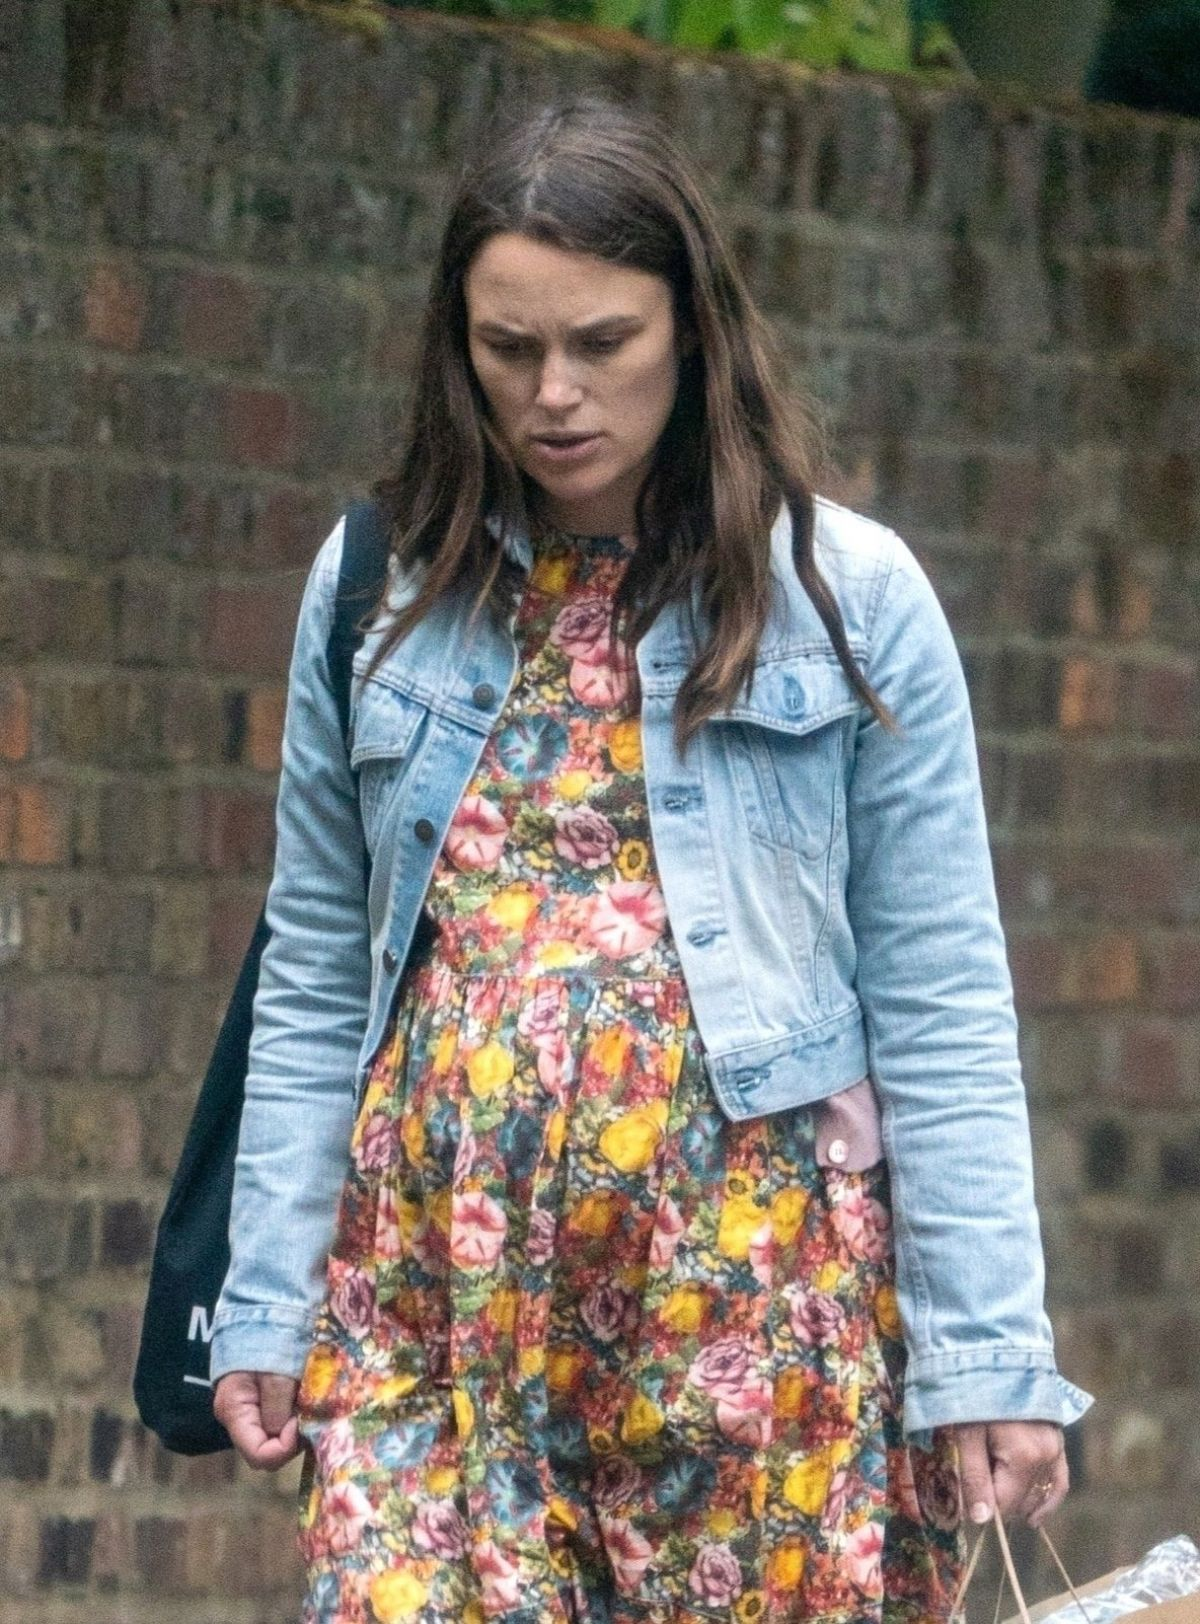 Pregnant KEIRA KNIGHTLEY Out in London 06/15/2019 – HawtCelebs